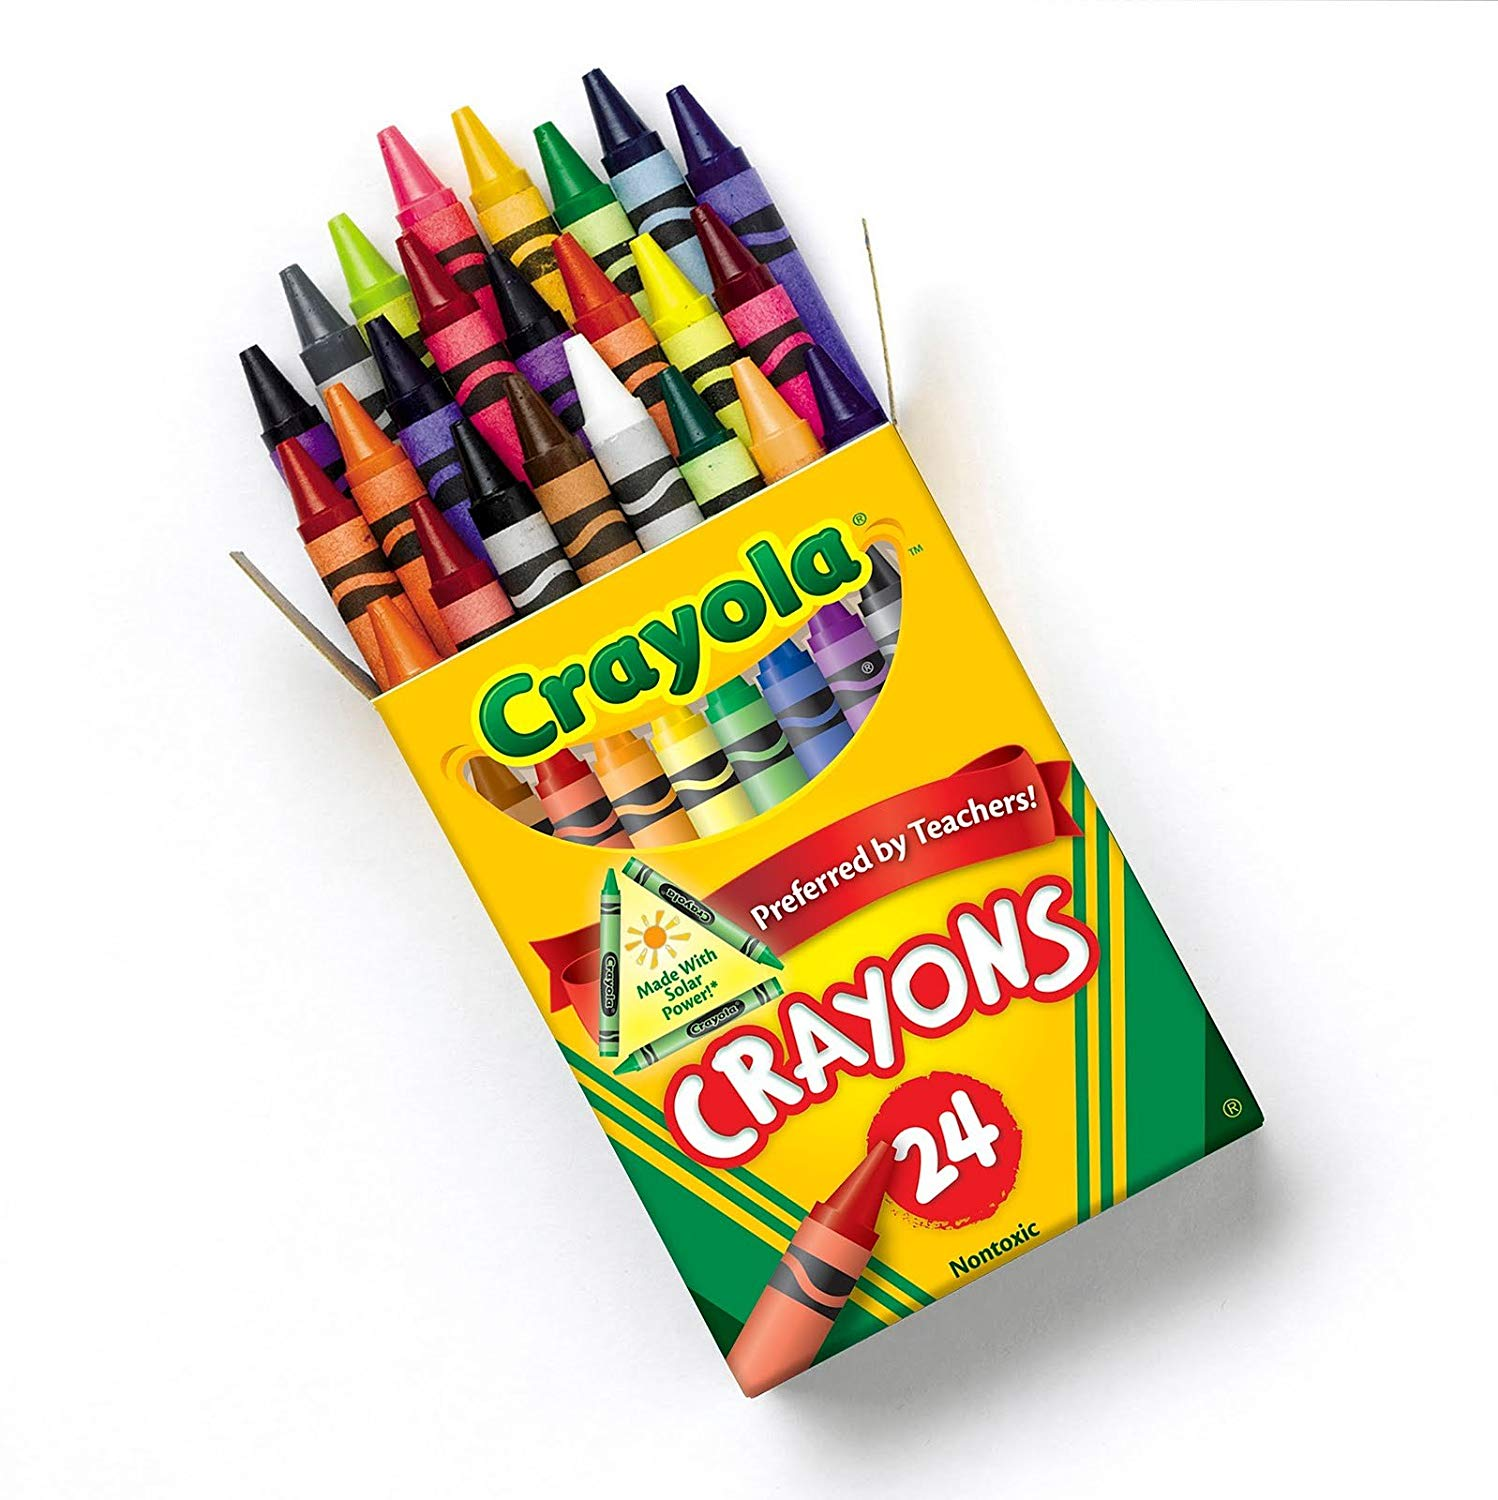 Crayola Crayons, 24 Count, 2 Pack and Crayon and Pencil Sharpener.